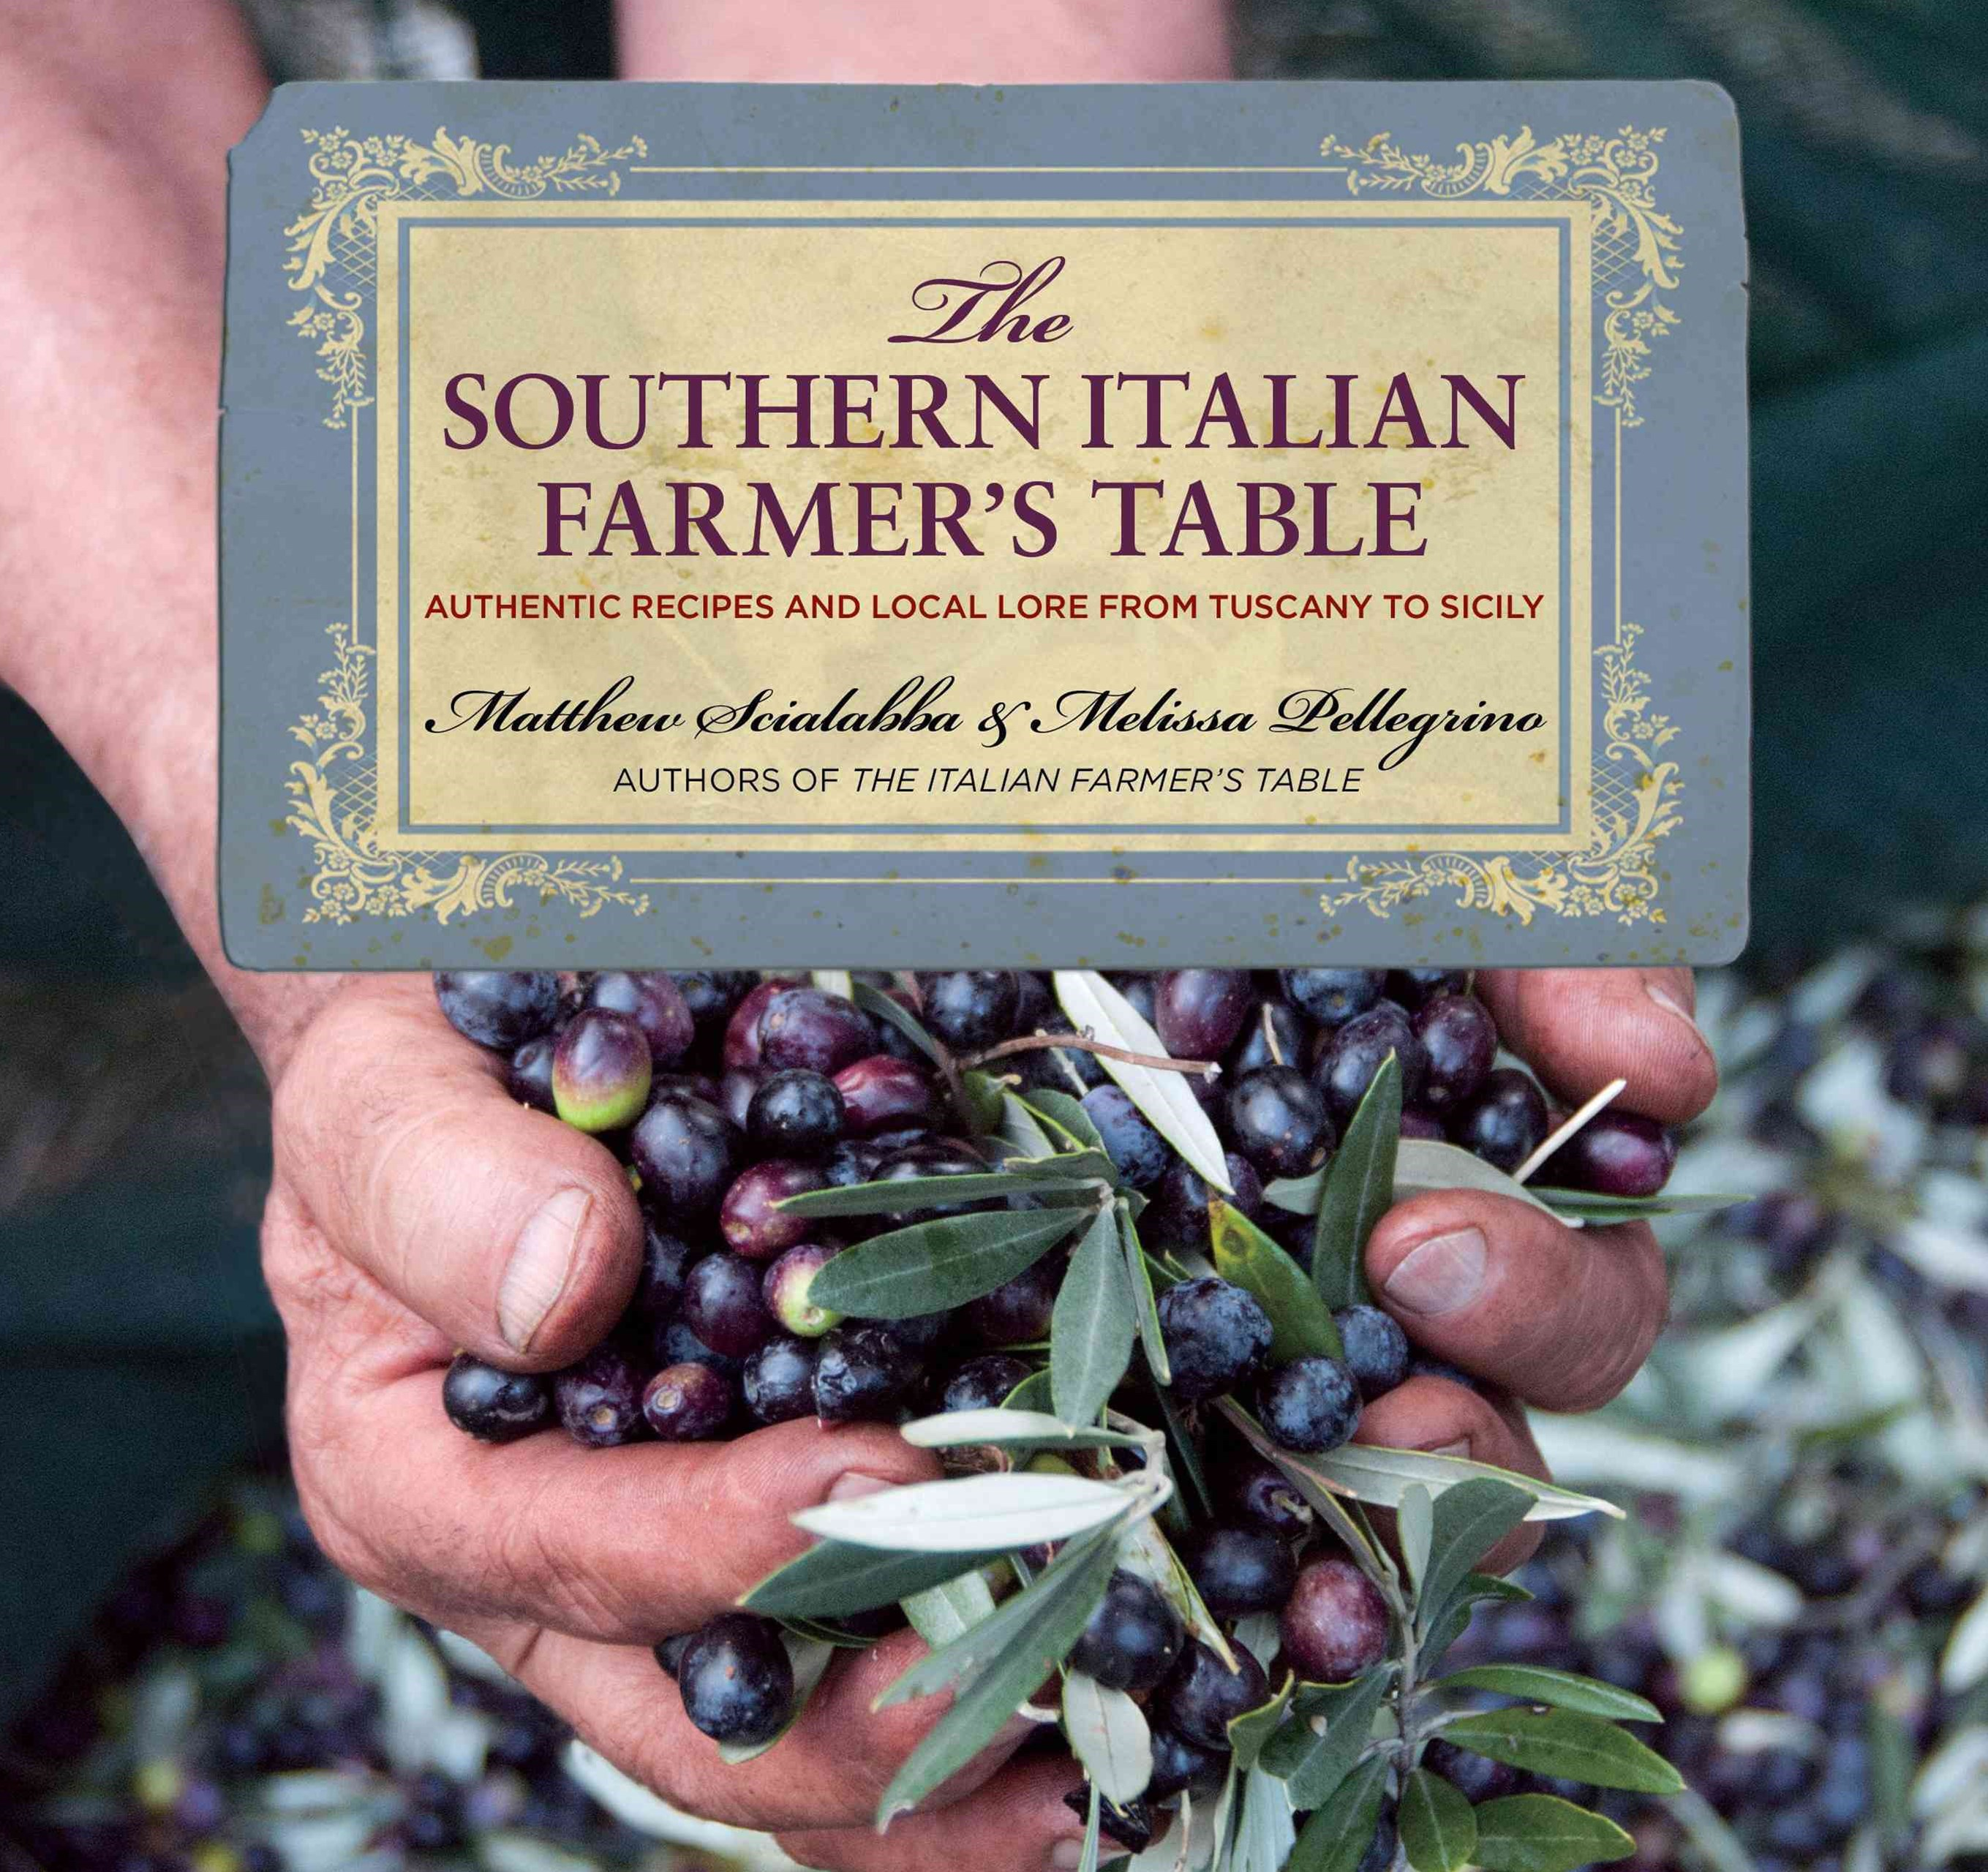 Southern Italian Farmer's Table